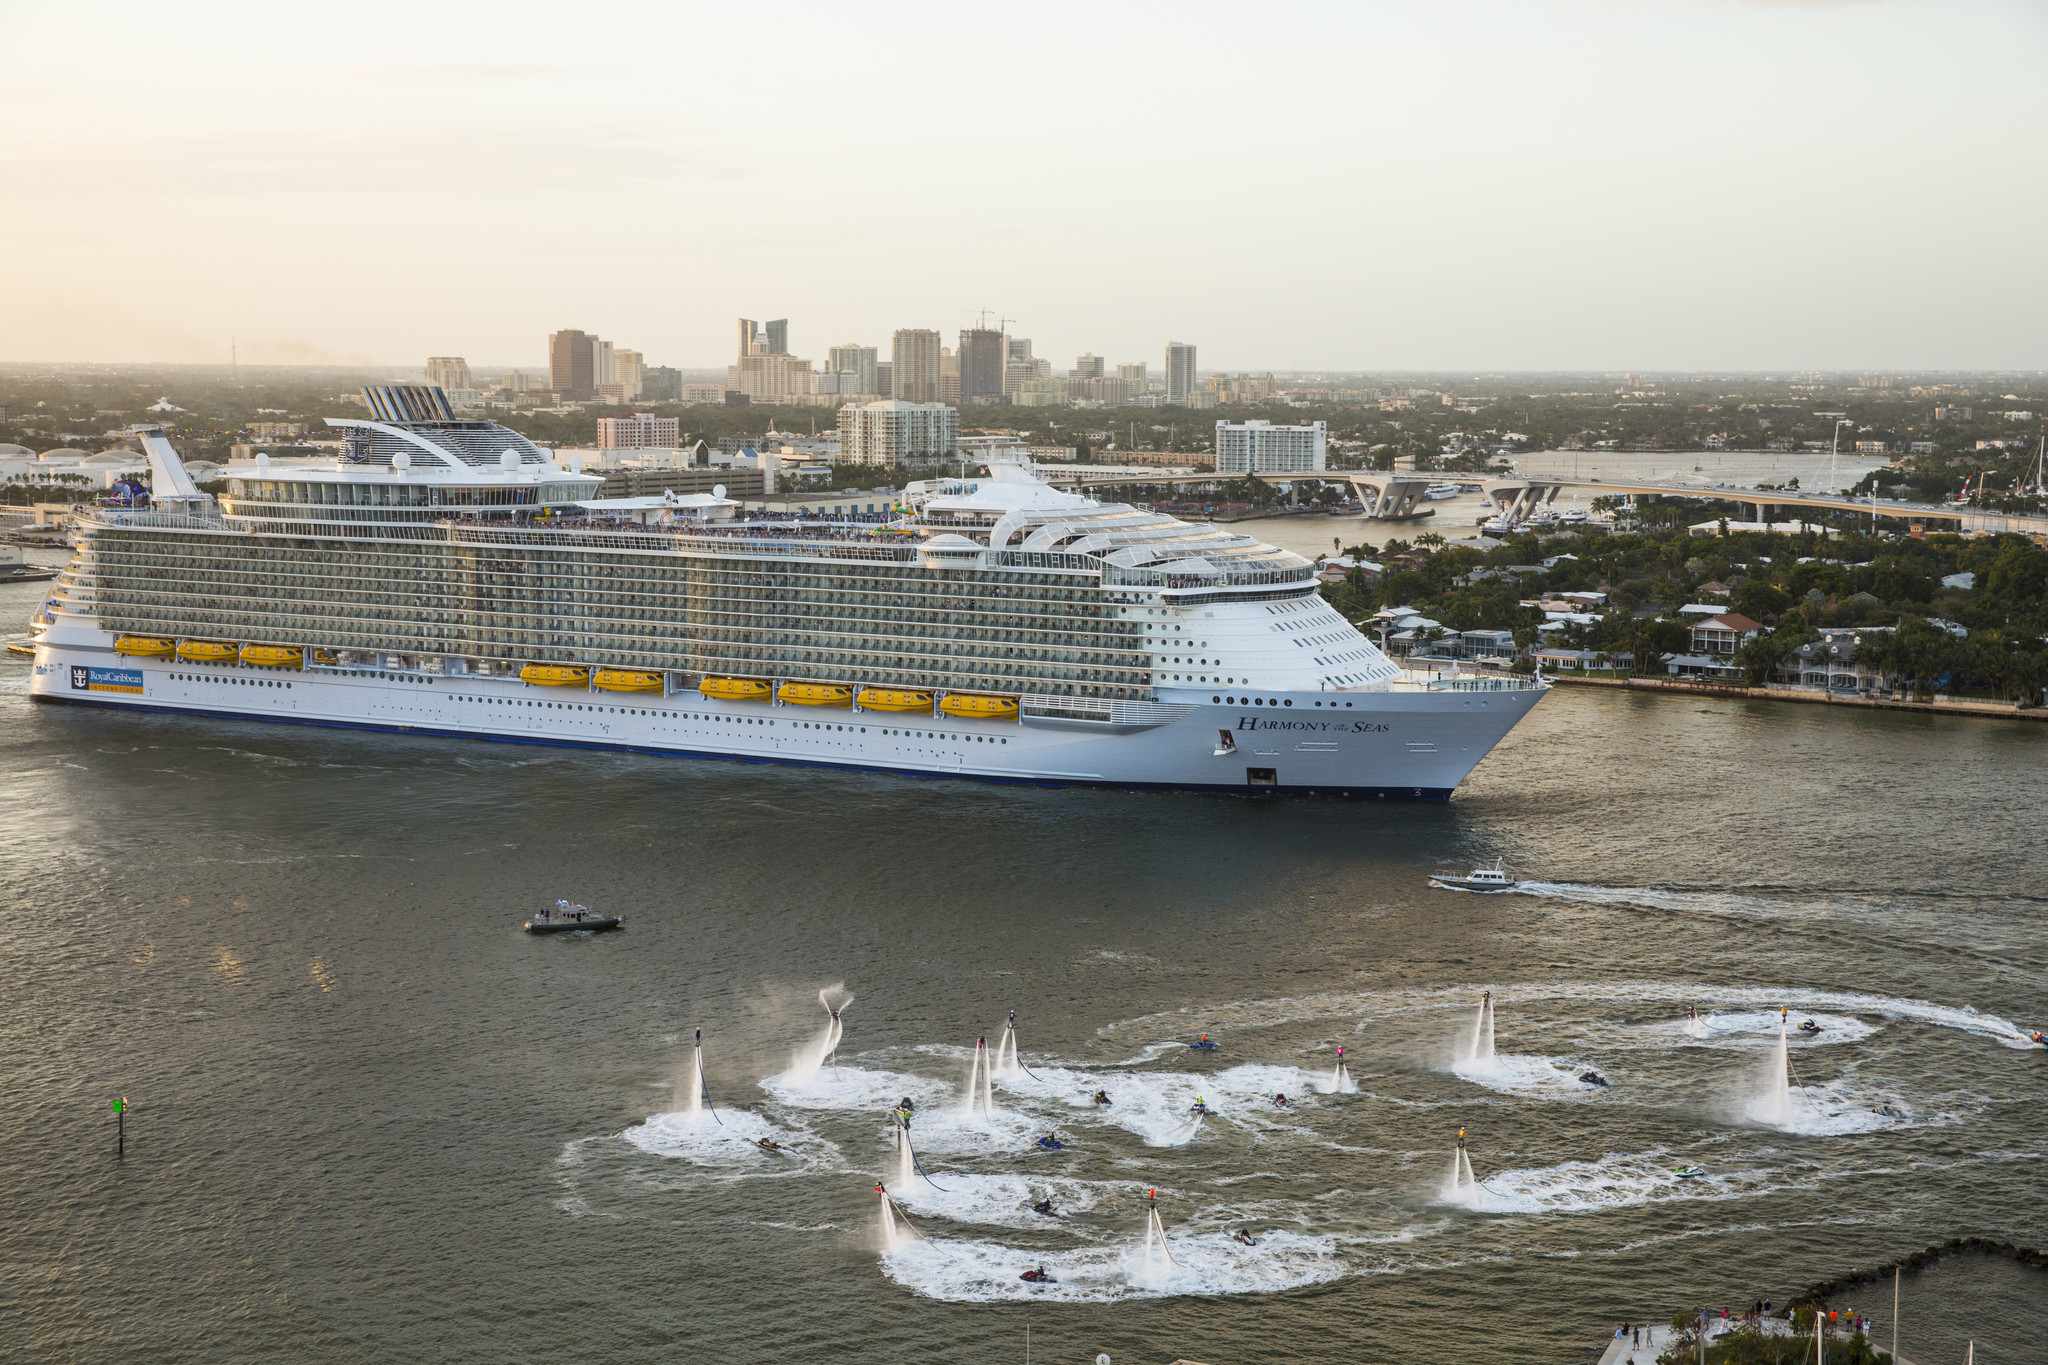 Worlds Largest Cruise Ship Makes Florida Debut Orlando Sentinel - Biggest cruise ships list